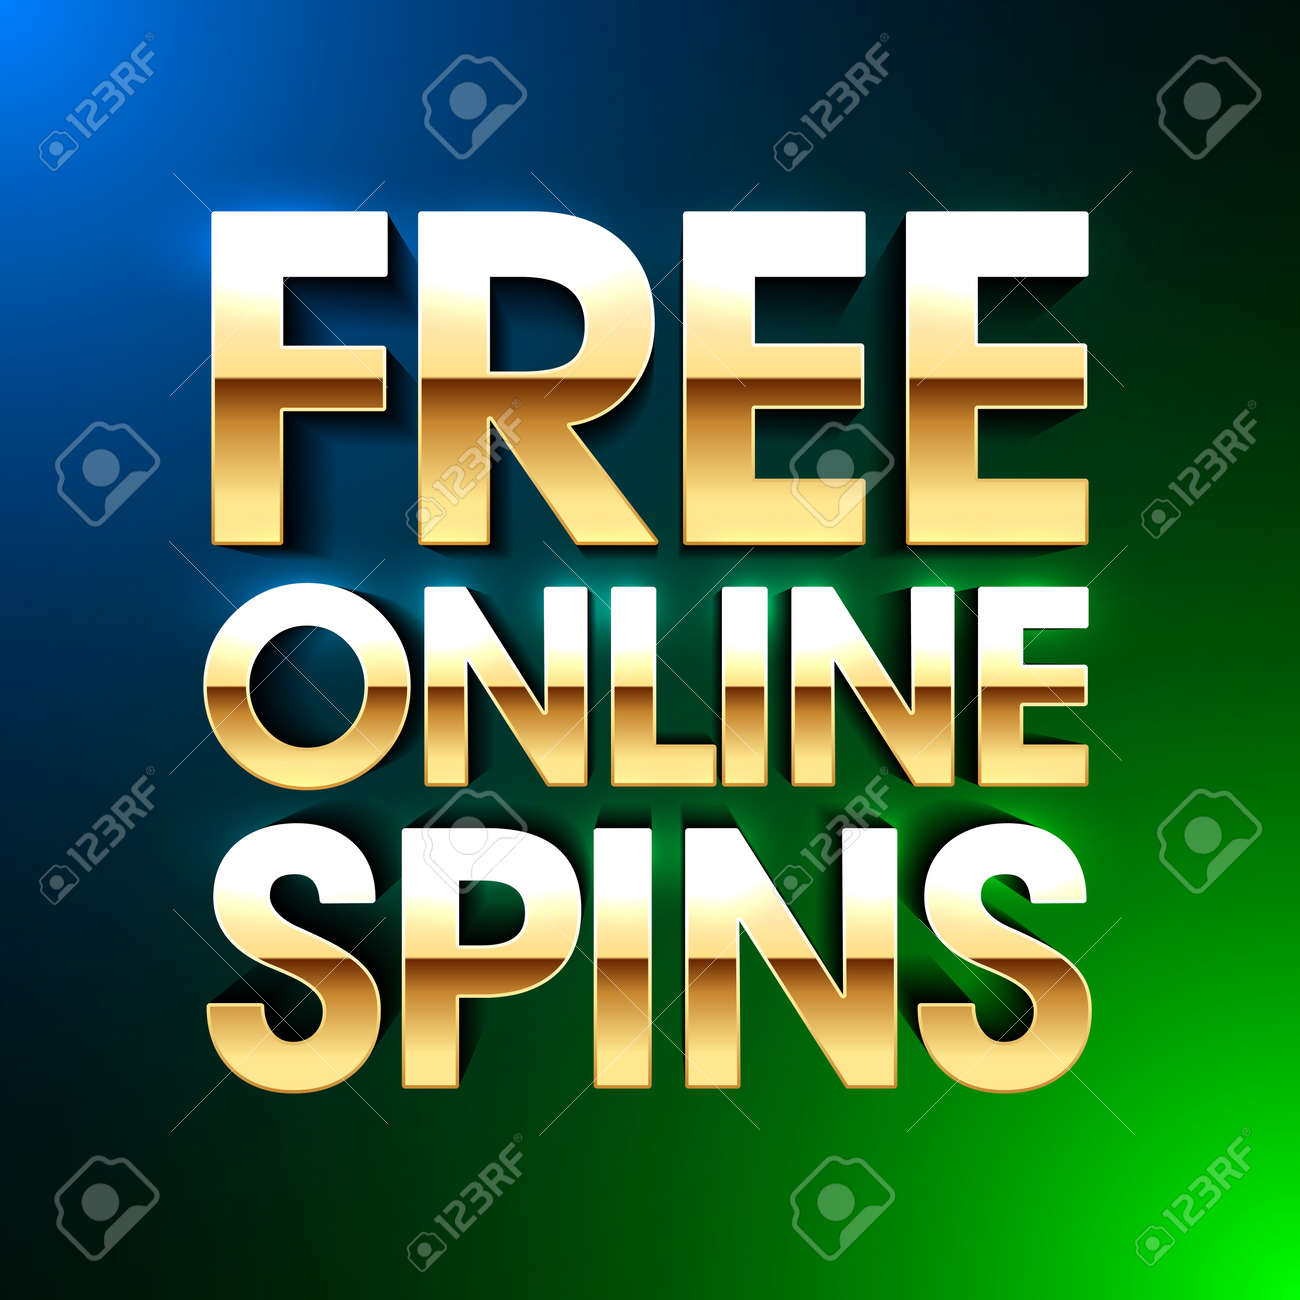 Free Online Spins Bright Banner Gambling Casino Games Slot Royalty Free Cliparts Vectors And Stock Illustration Image 96588116